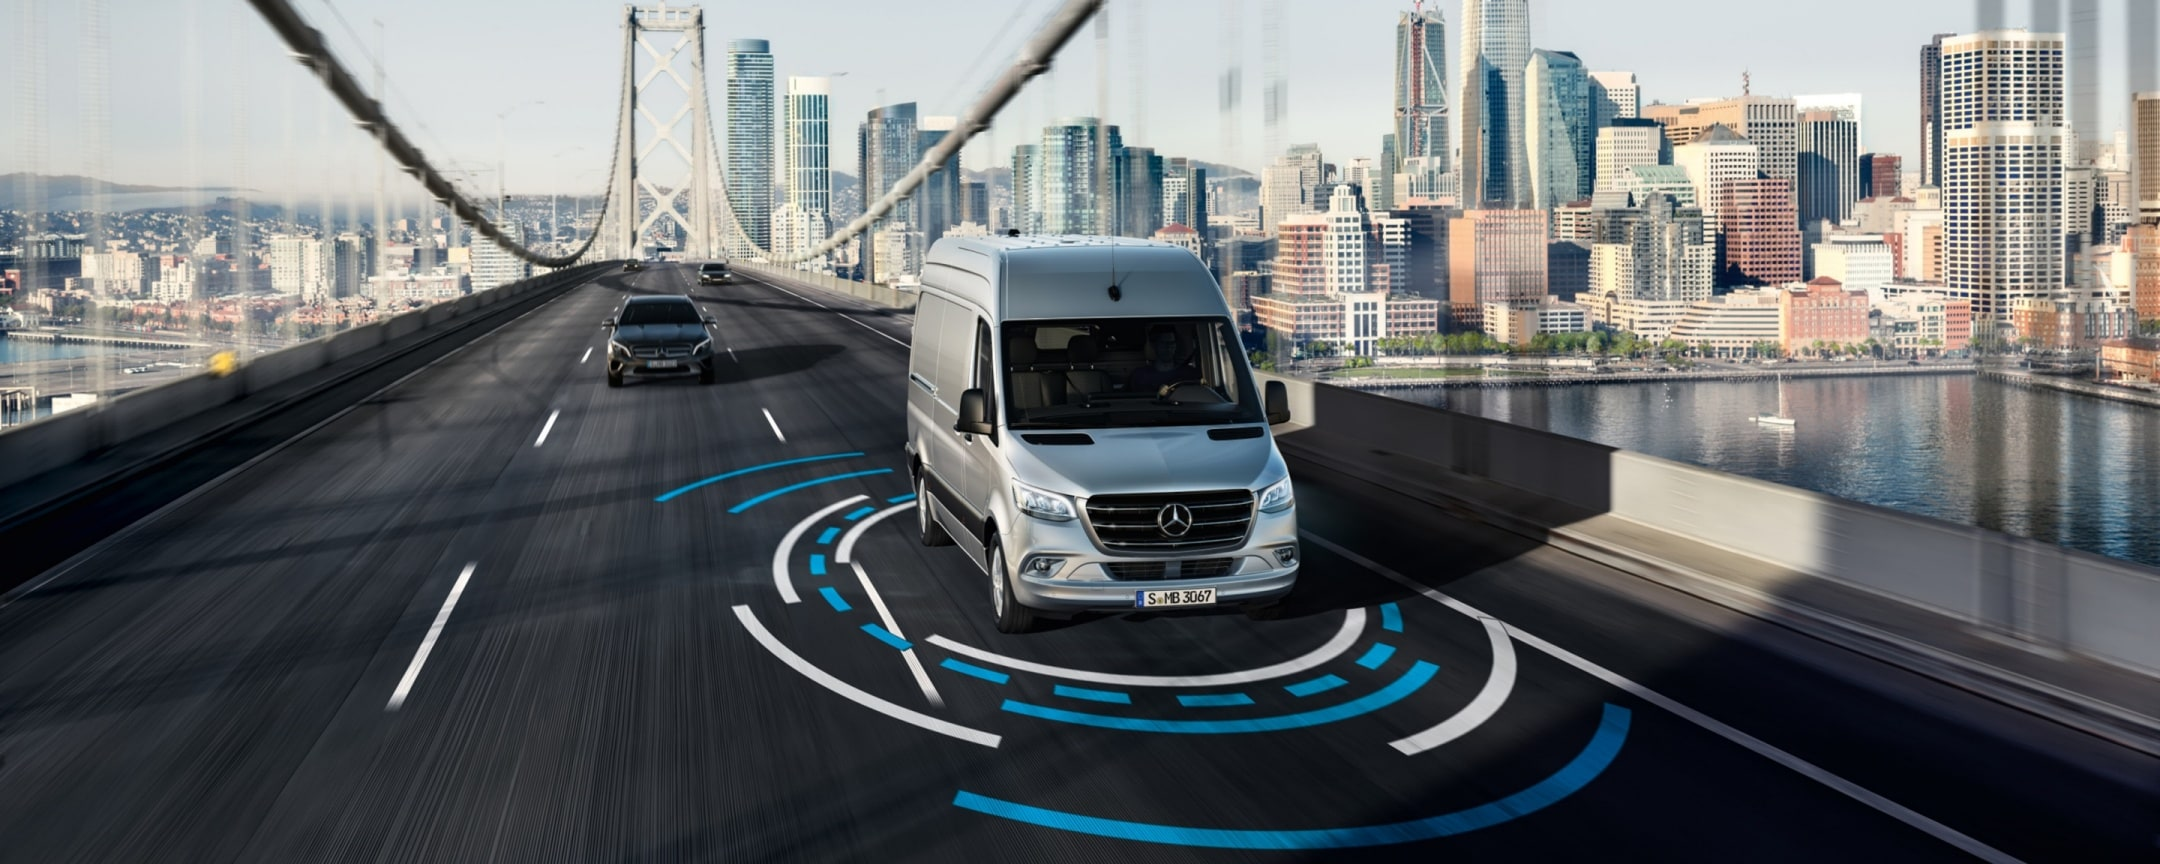 A Mercedes-Benz Sprinter with active safety systems driving along a bridge